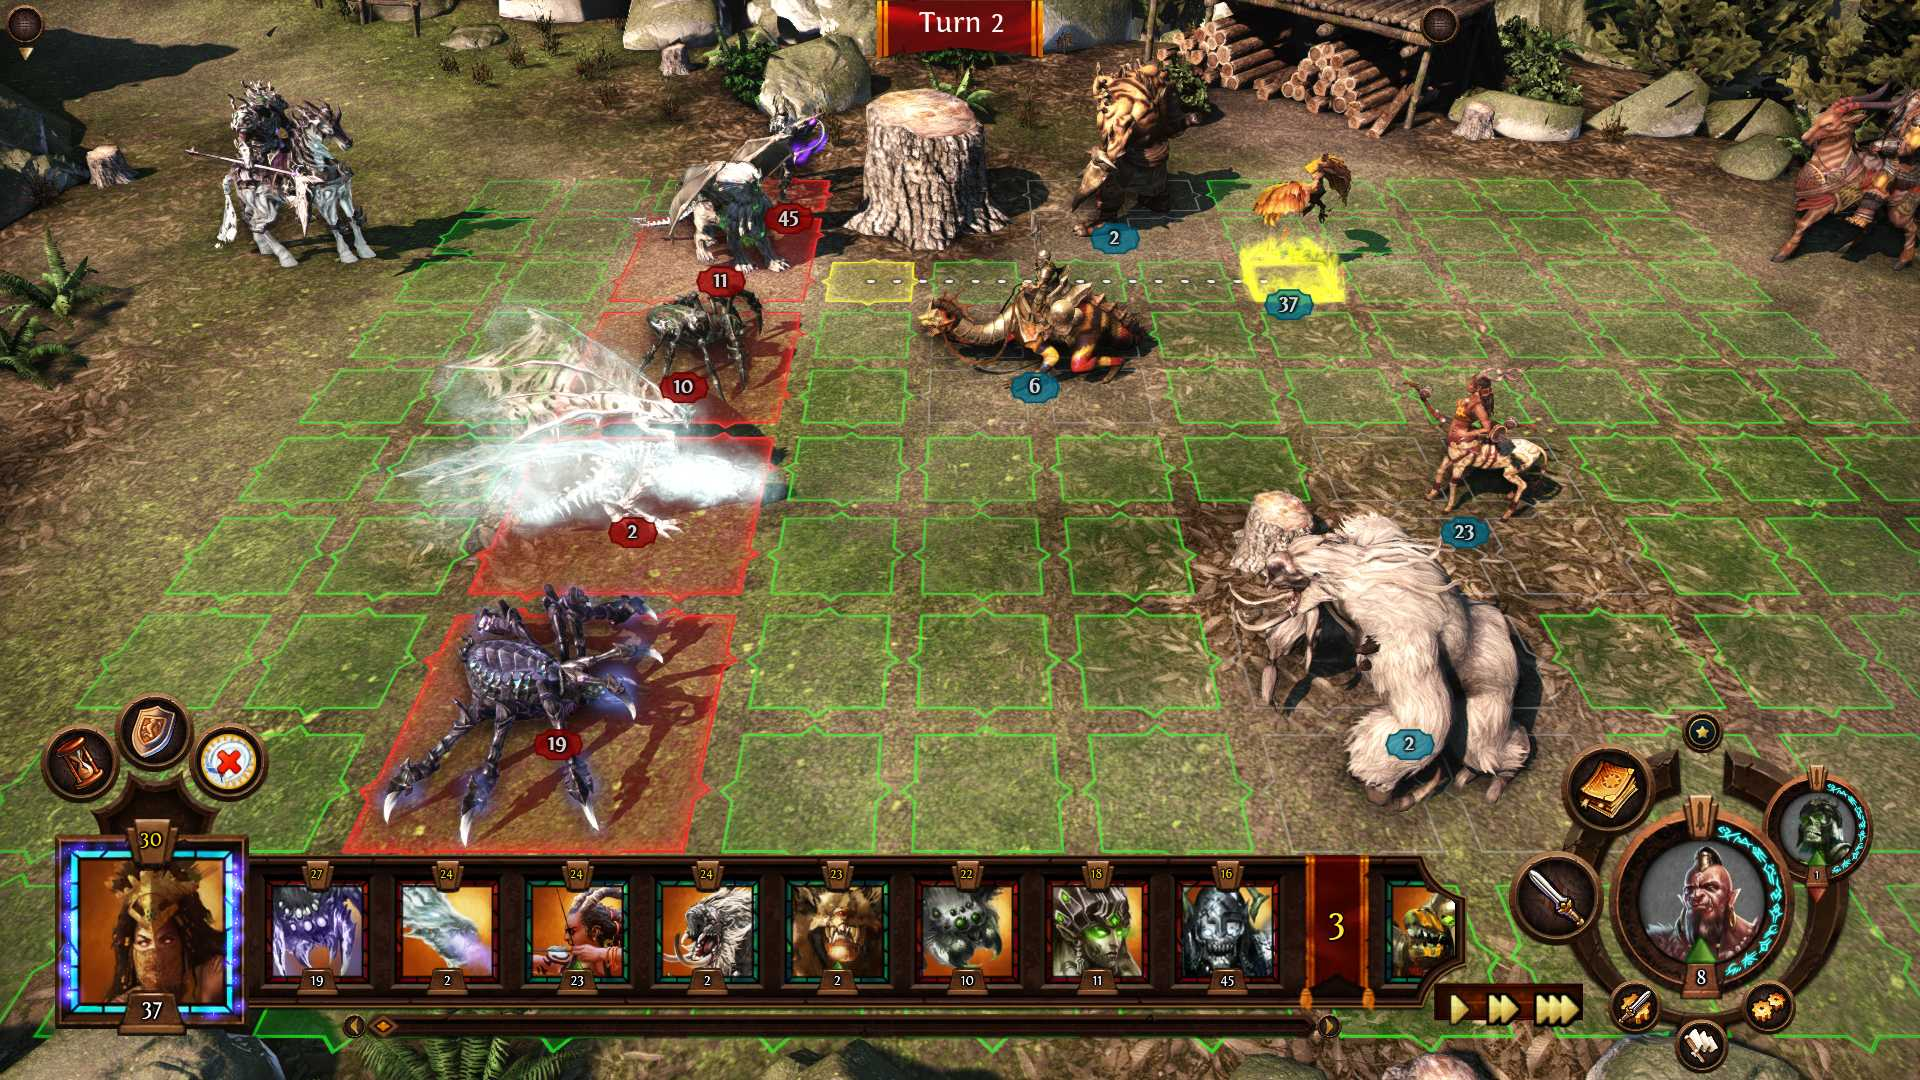 Heroes of Might and Magic 7 VII